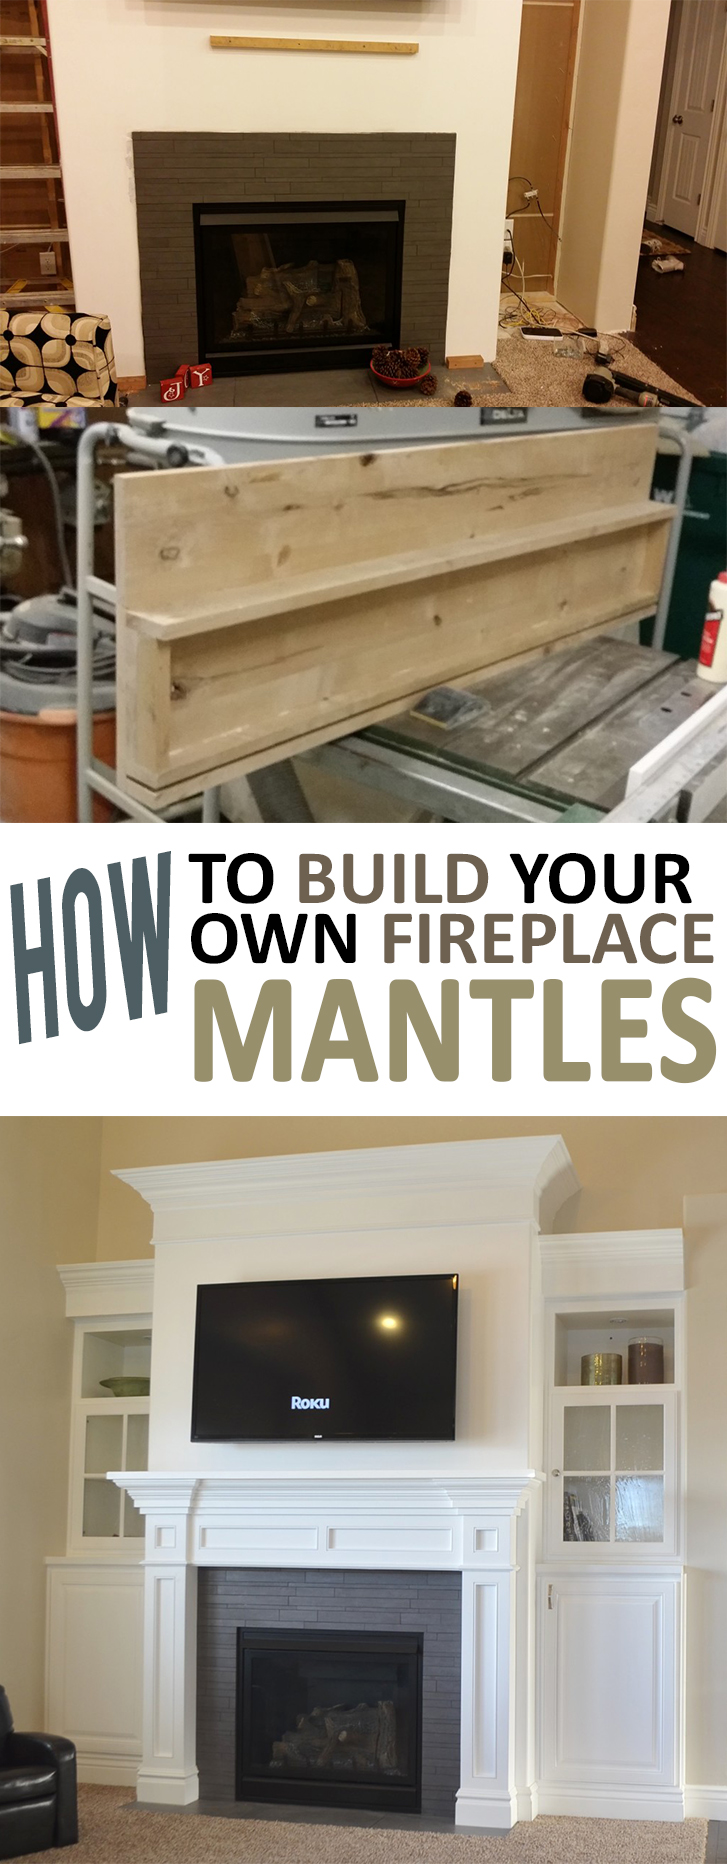 How to Build Your Own Fireplace Mantle - How To Build Your Own Fireplace Mantel -